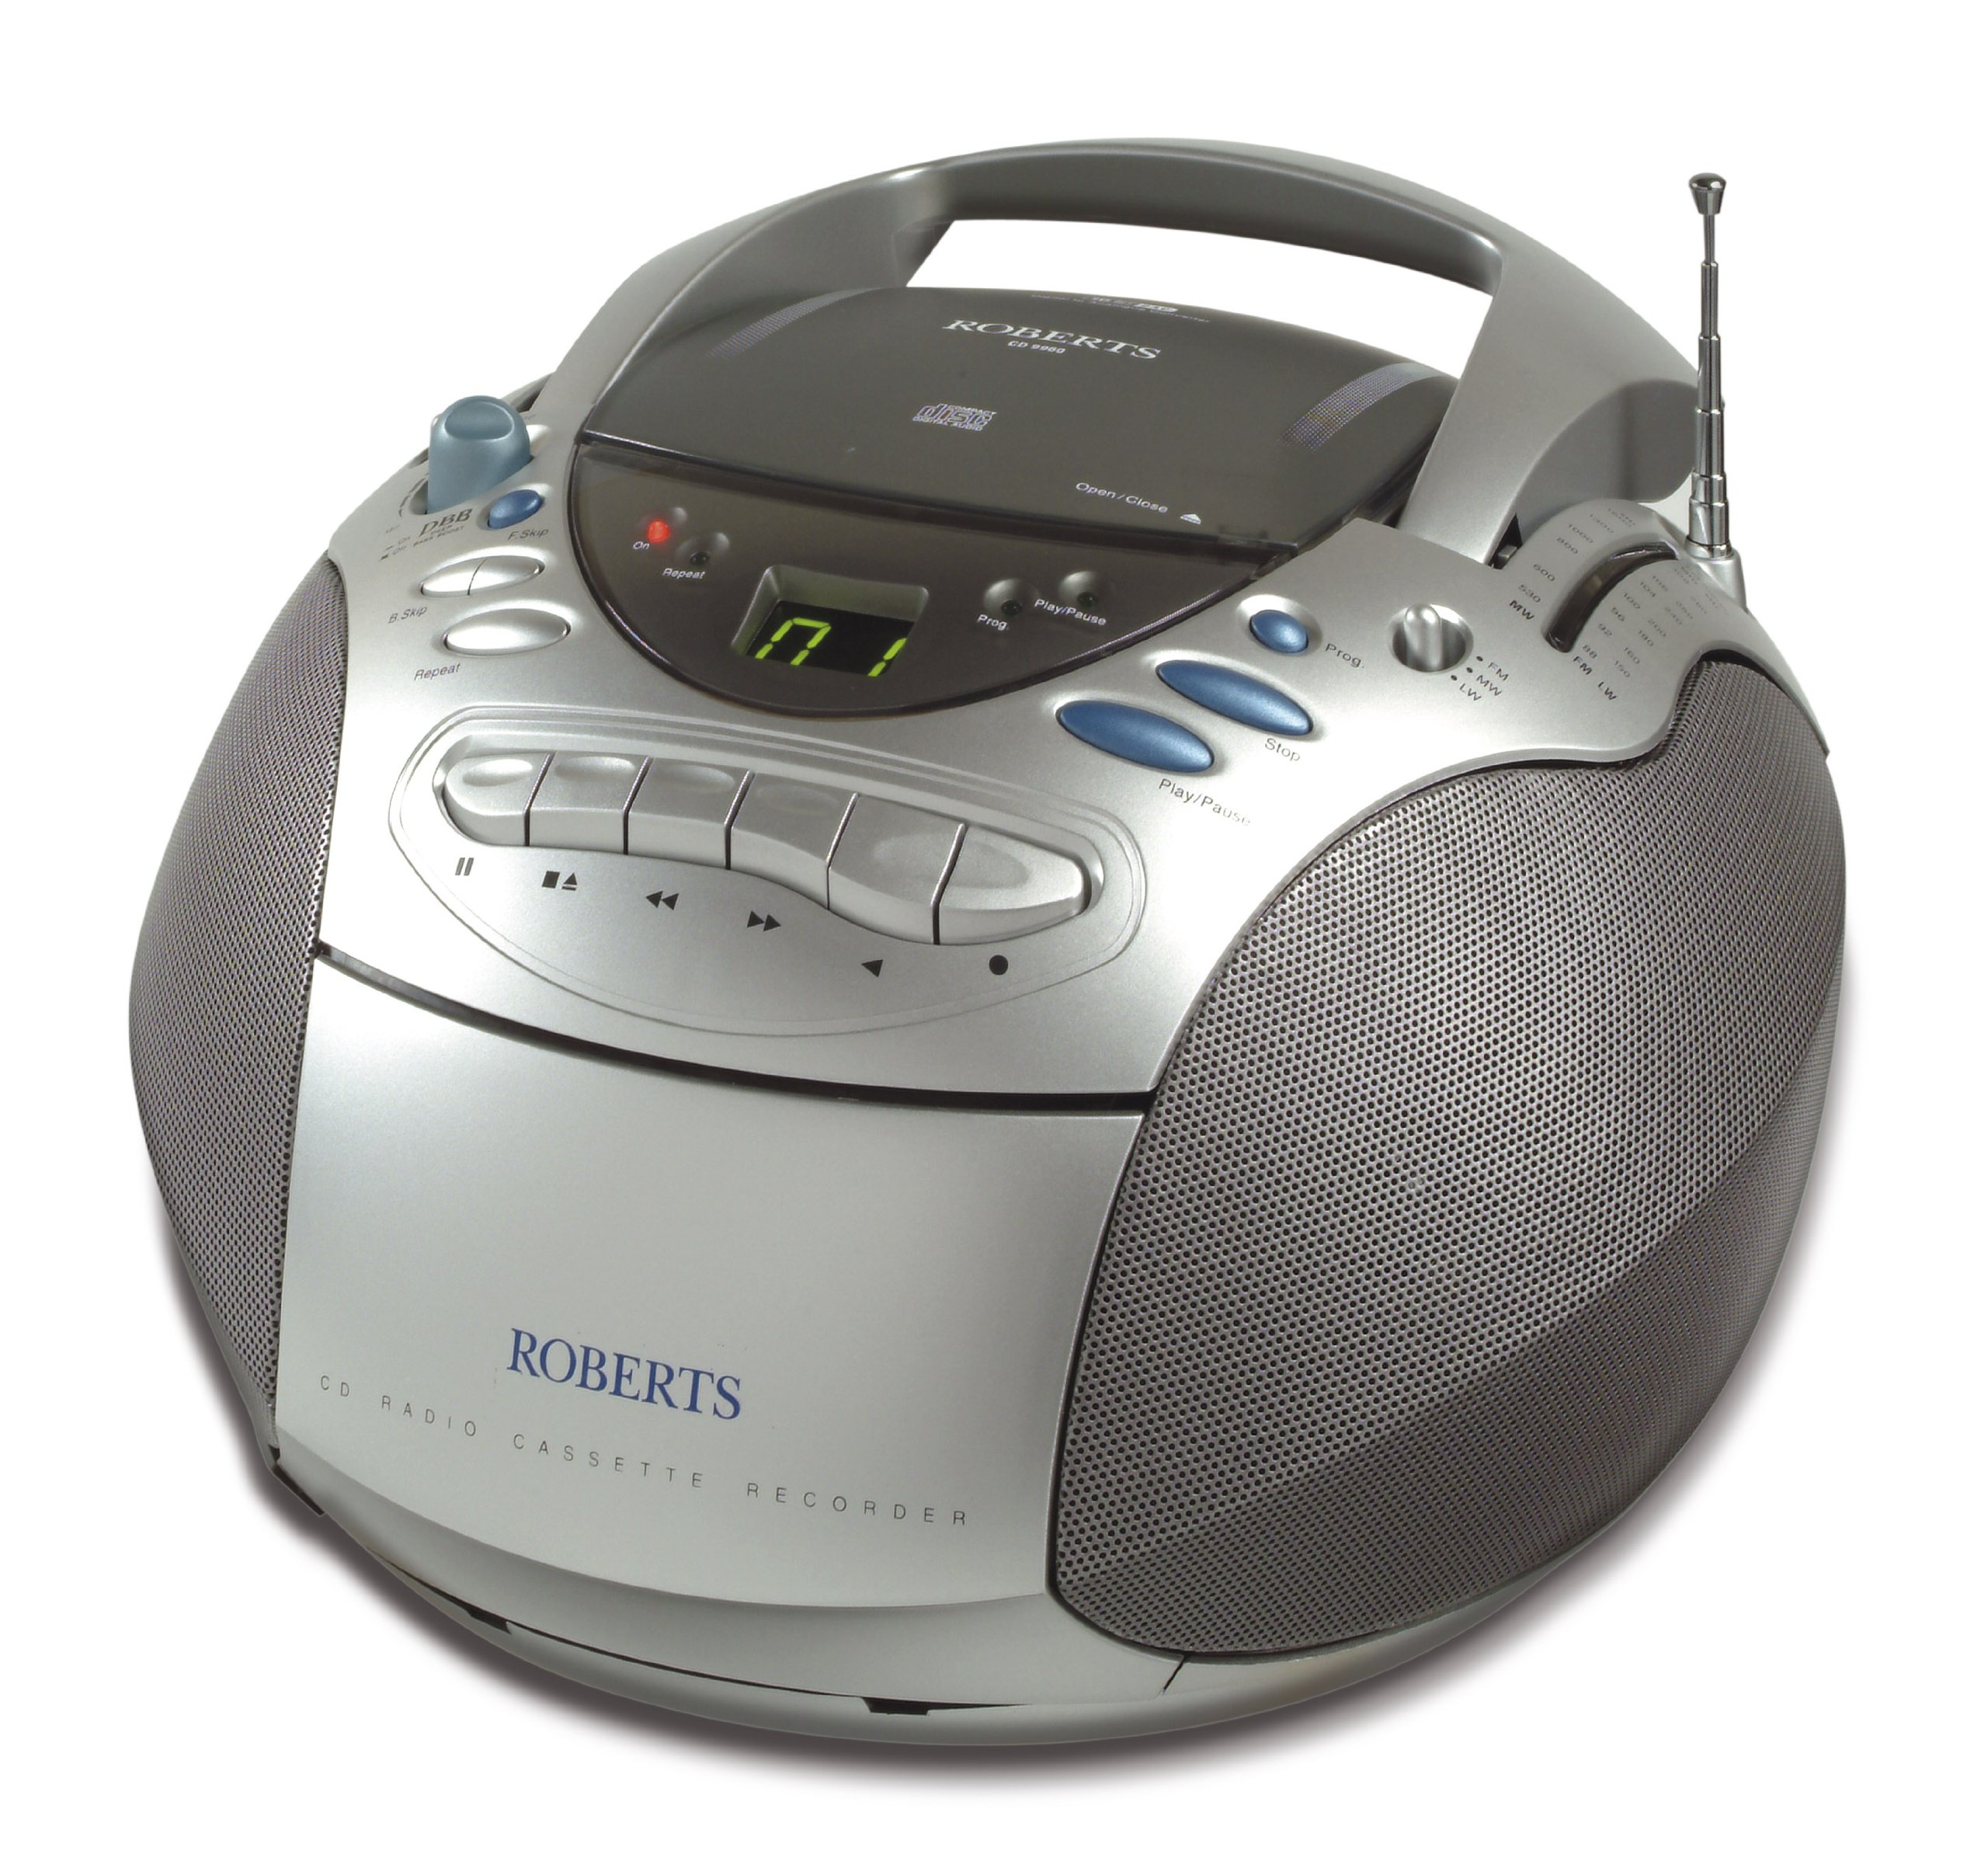 roberts cd9960 cd fm mw lw radio cassette player new ebay. Black Bedroom Furniture Sets. Home Design Ideas